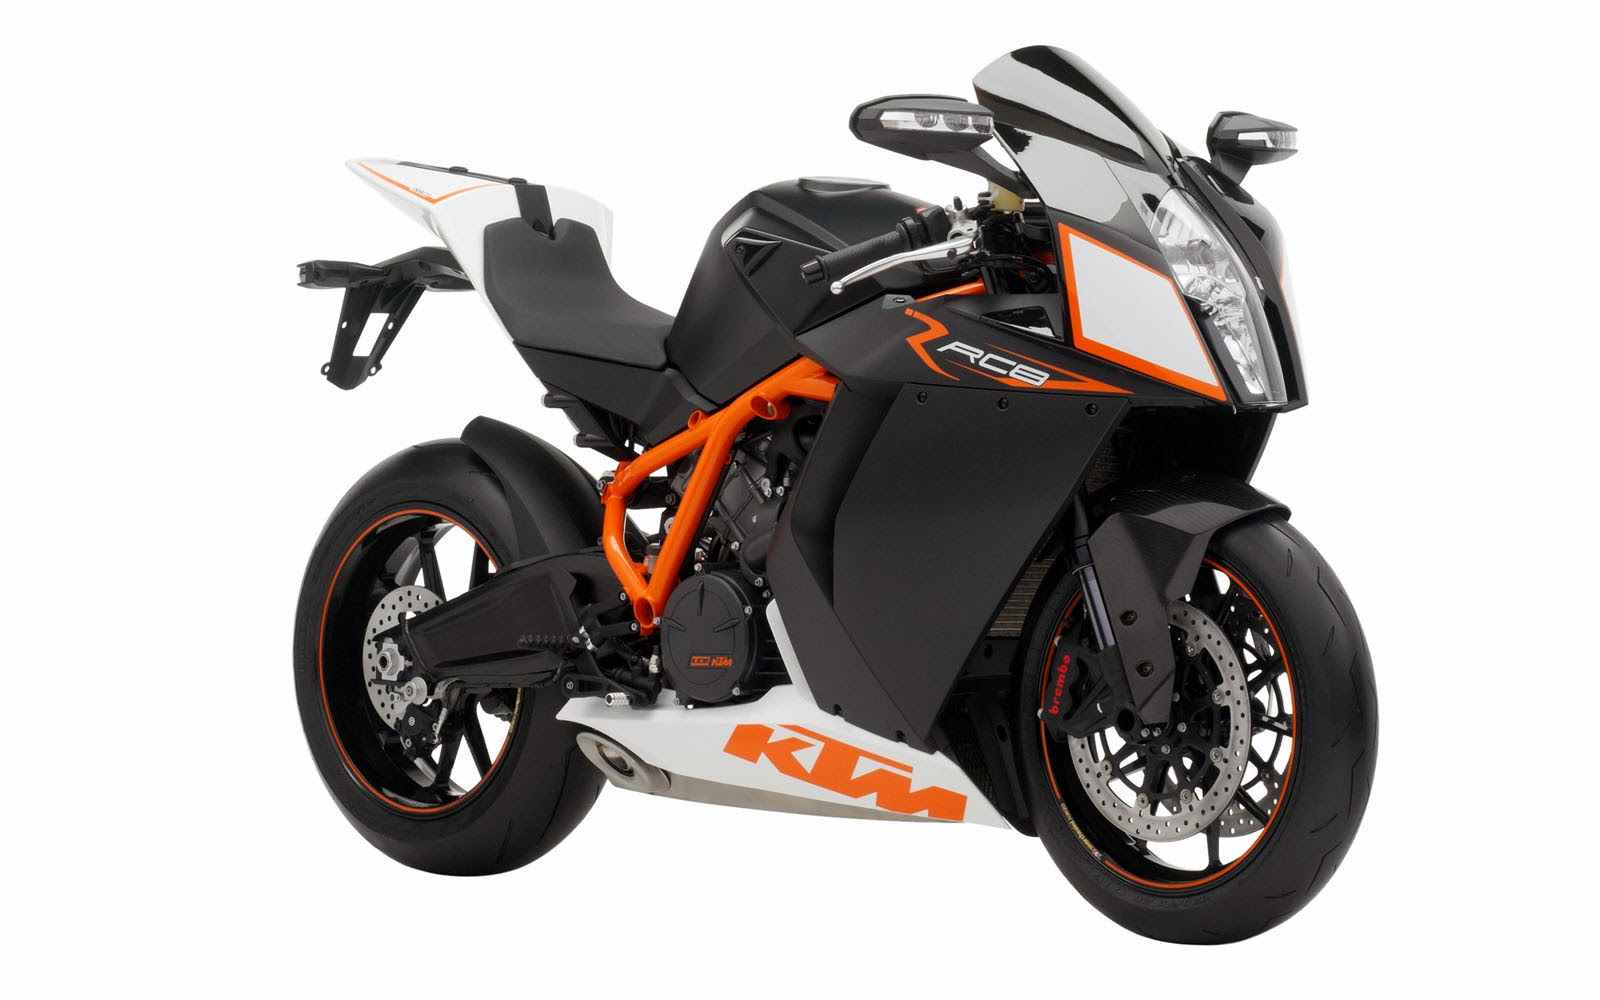 ktm rc8 car interior design. Black Bedroom Furniture Sets. Home Design Ideas